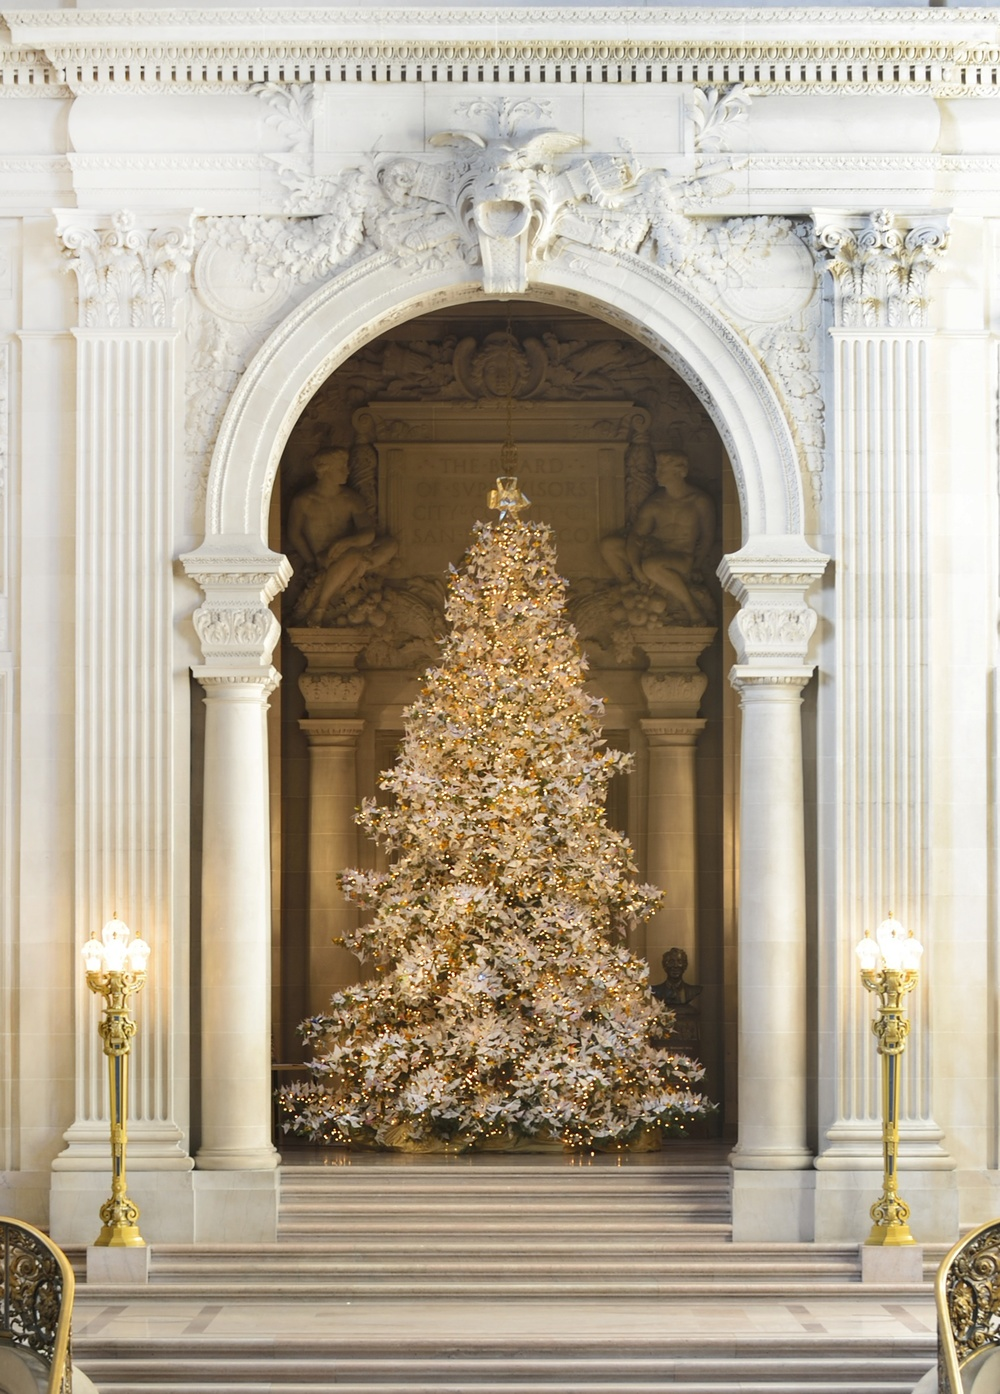 Official -cropped- 2013 World Tree of Hope by William Lee - HR copy.jpg